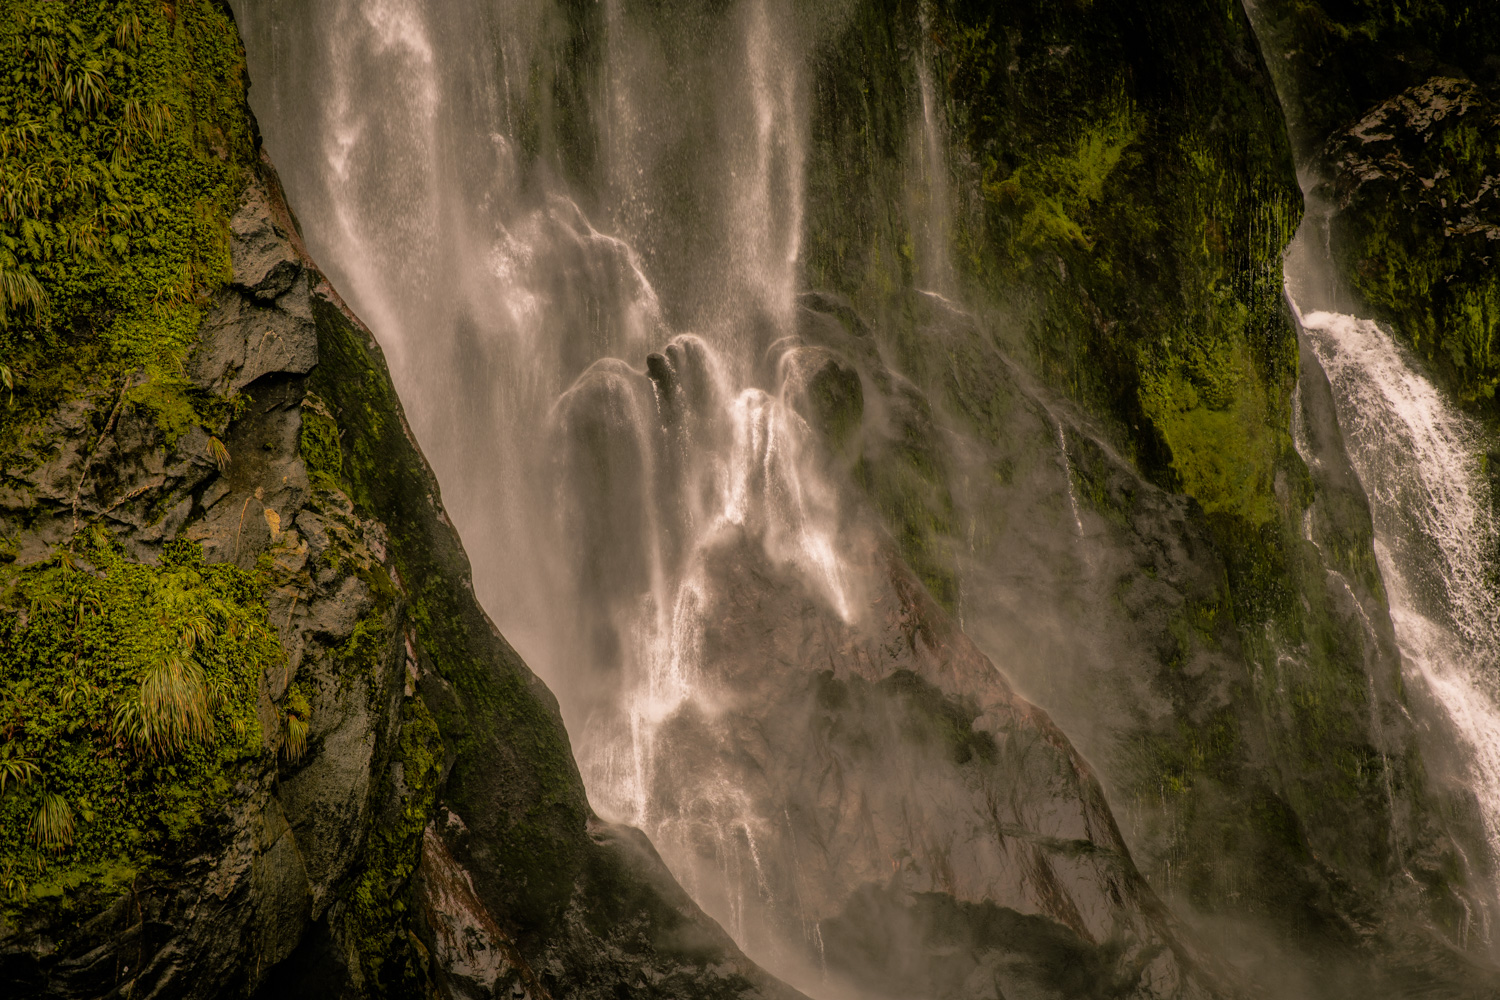 Stirling Falls - Milford sound, New Zealand